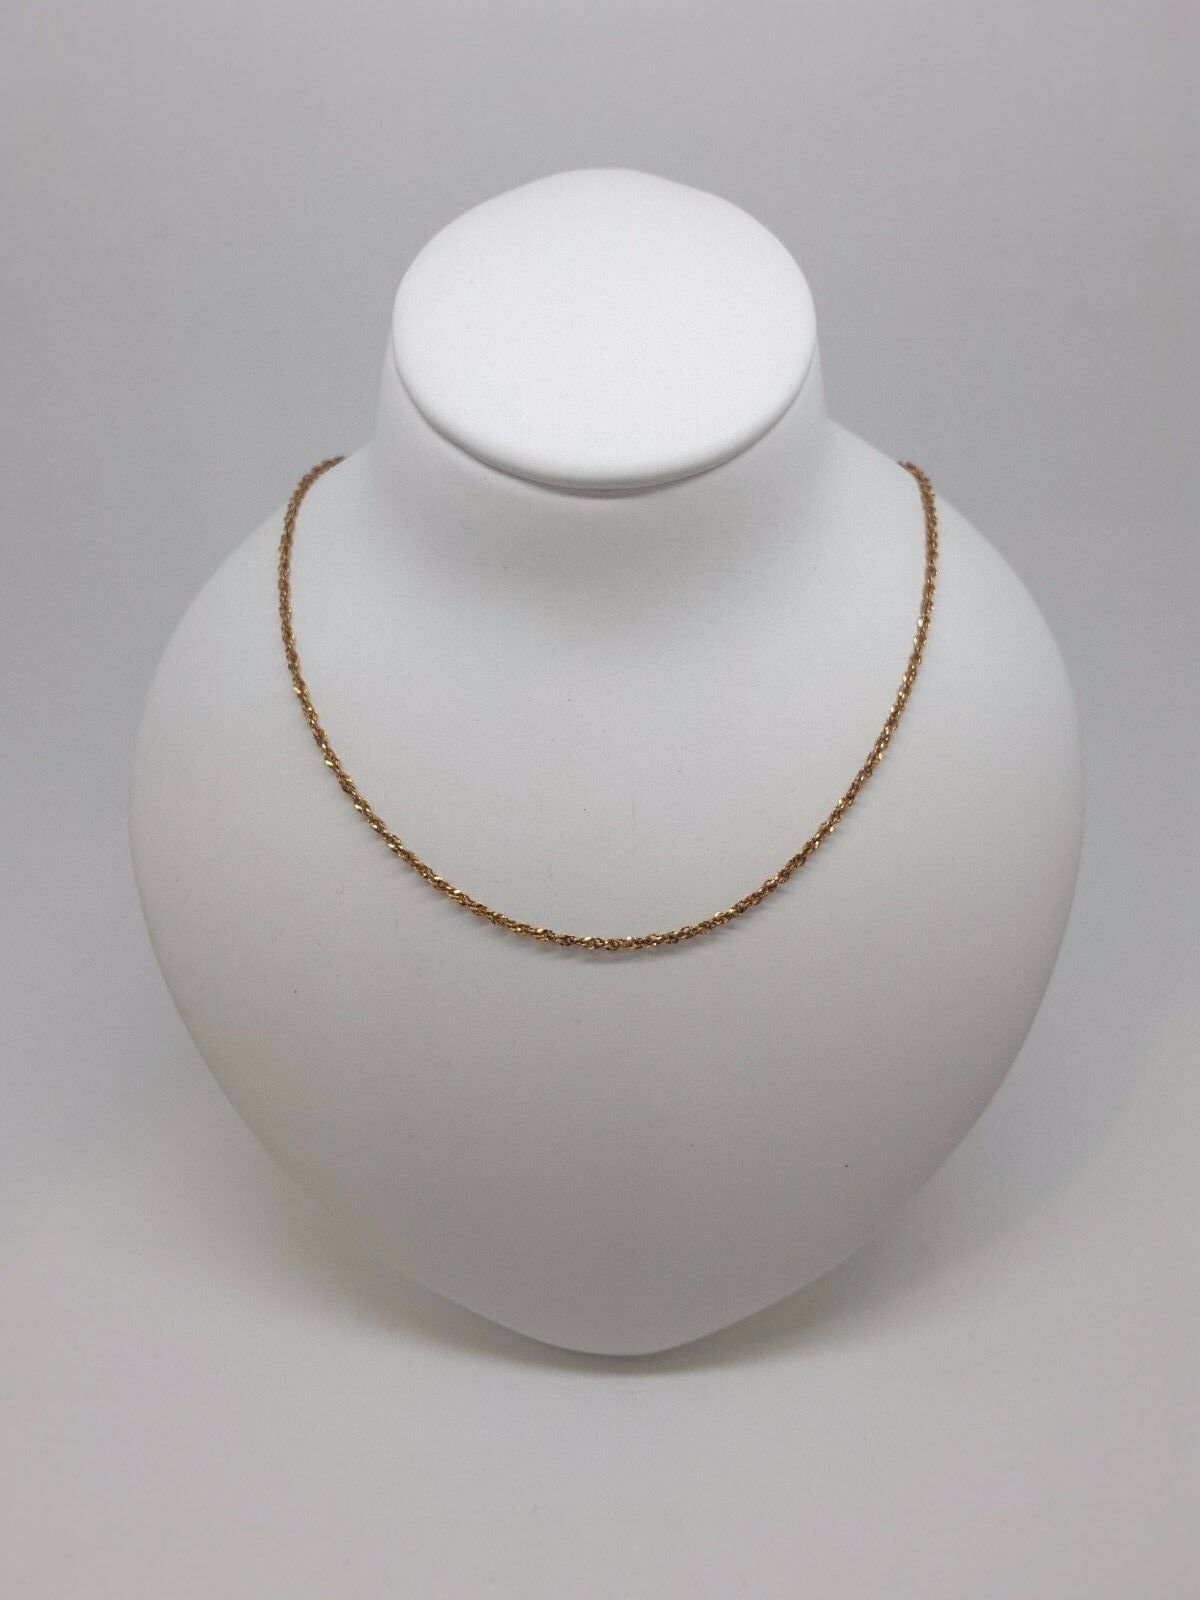 Miran 150049 Solid gold Chain 9ct Singapore 45cm 1.5g RRP  165